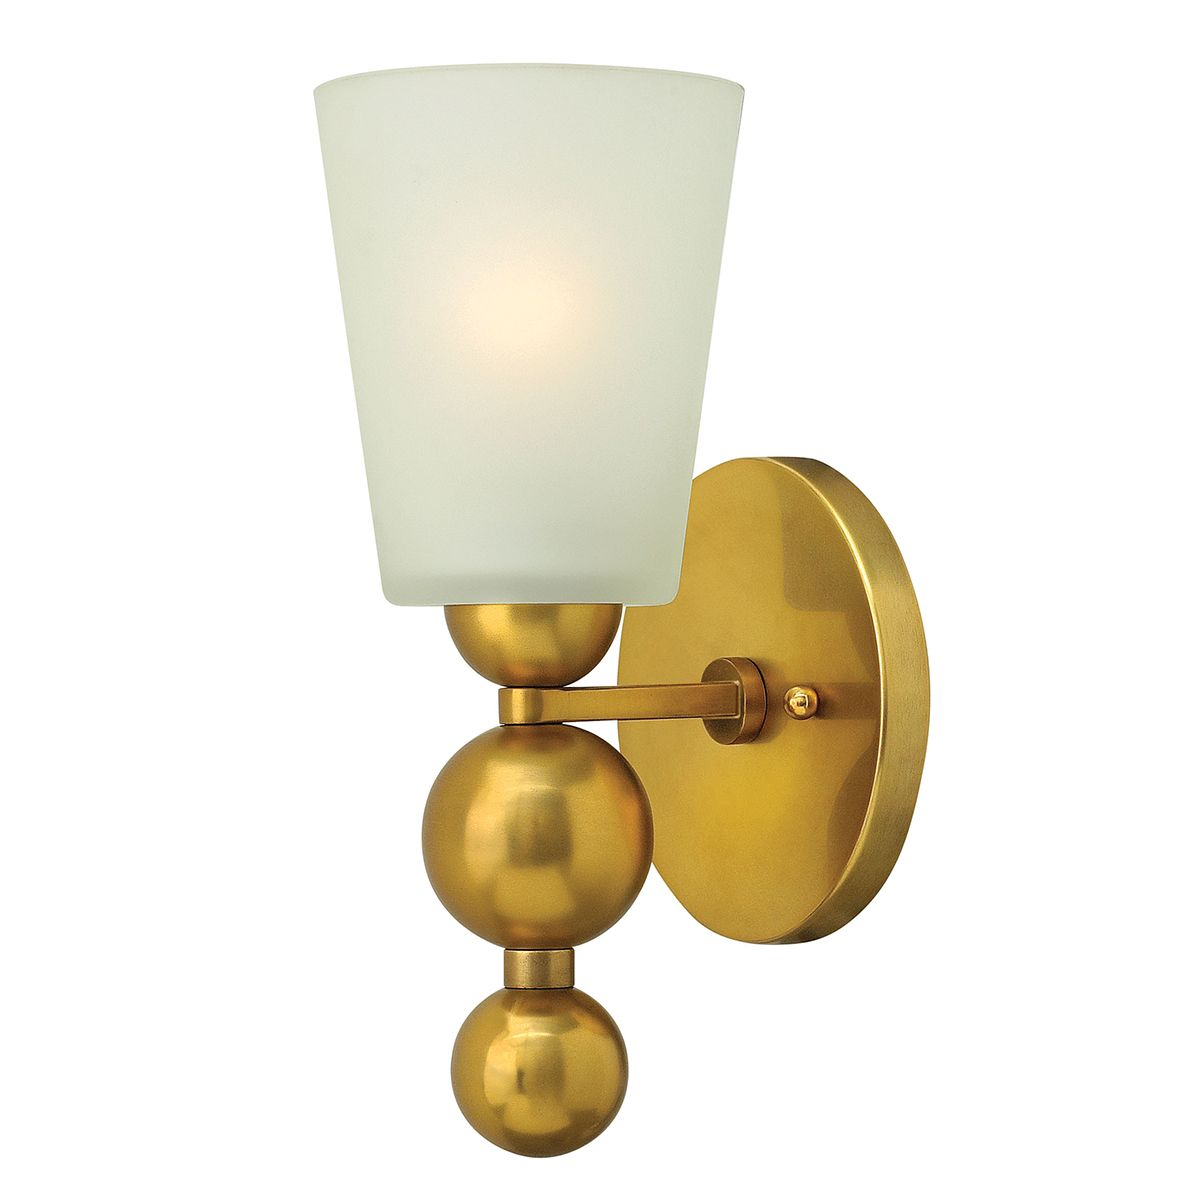 Etched Glass Wall Lights : Zelda Single Wall Light in Vintage Brass with an Etched Glass Shade - HINKLEY HK ZELDA1 VS